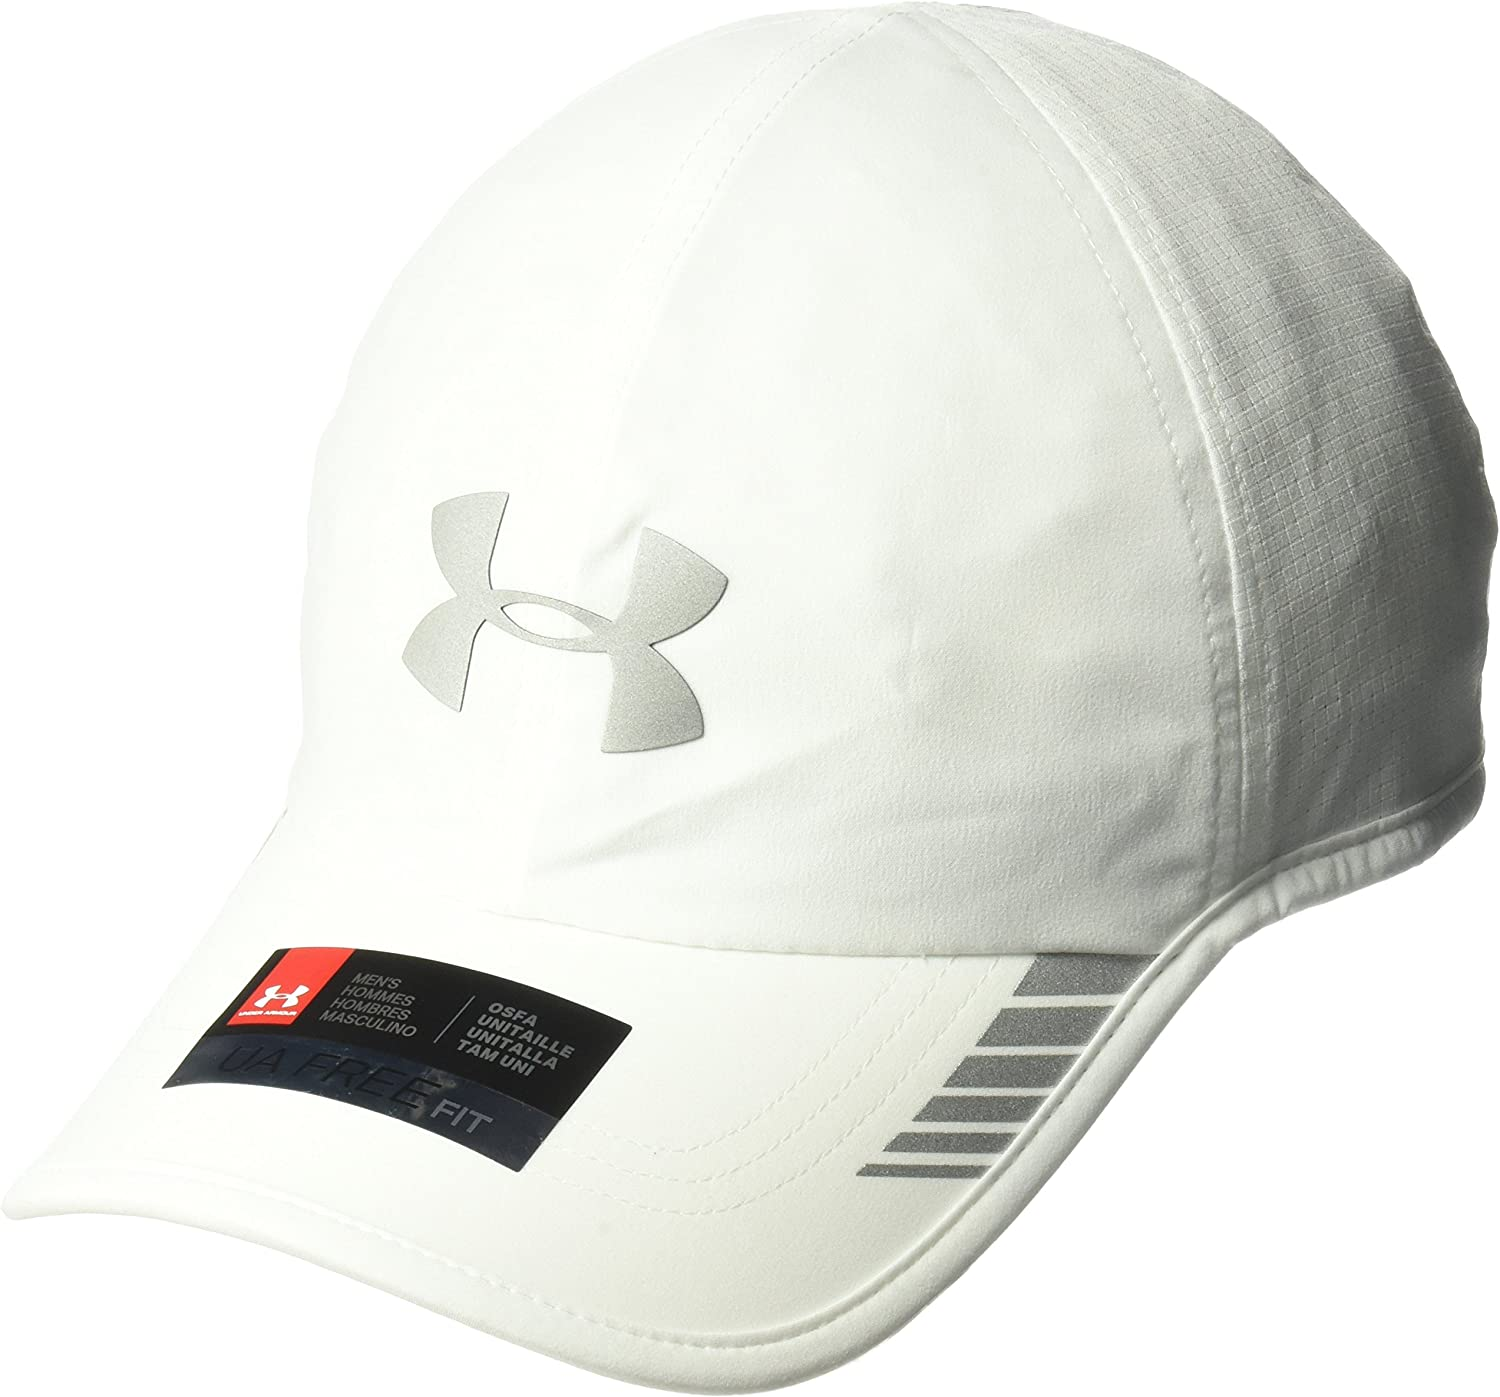 Under Armour Men's Launch ArmourVent Cap , White (100)/Silver , One Size Fits All : Sports & Outdoors